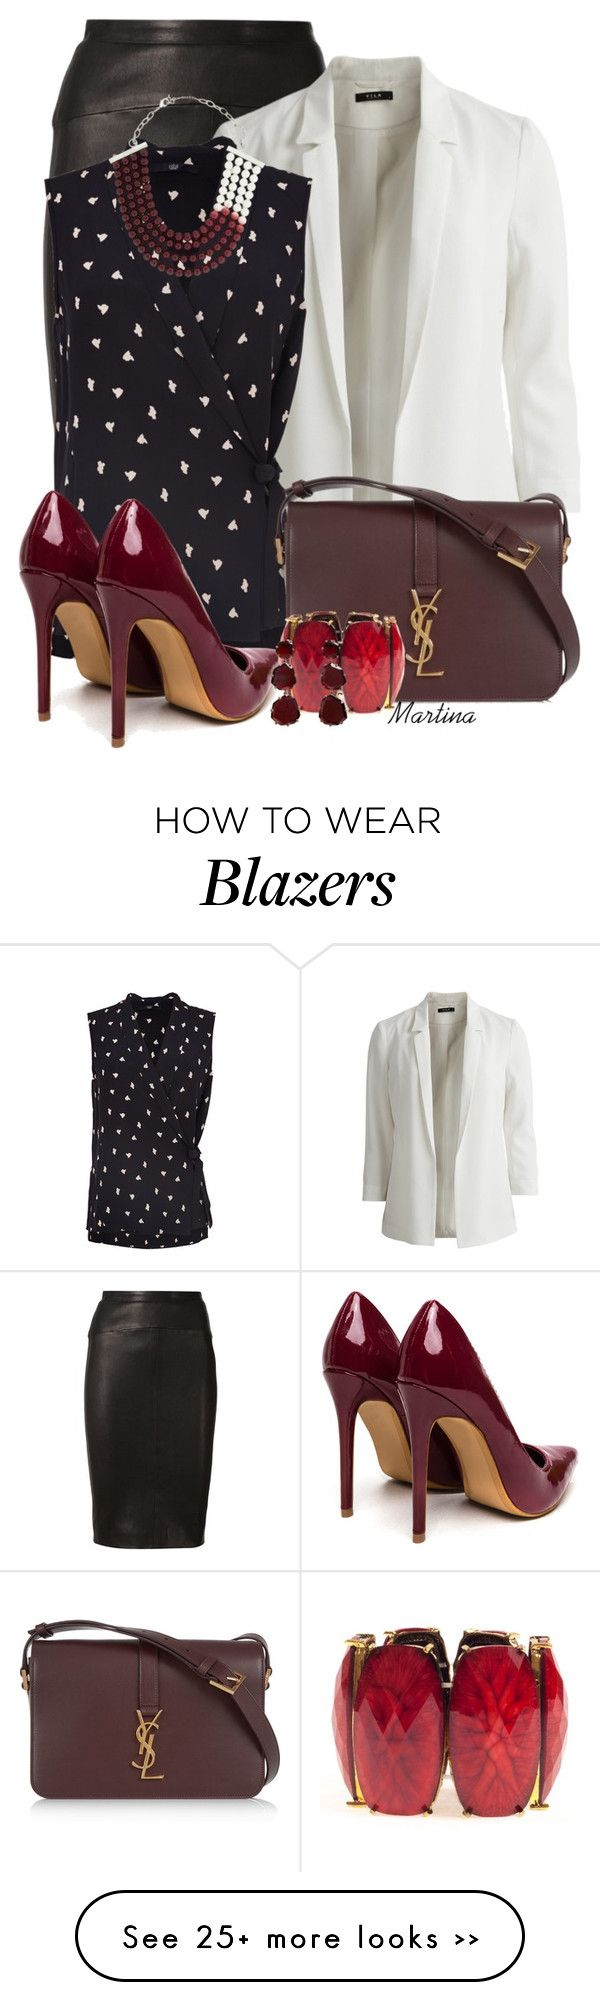 """Bez naslova #2171"" by martina-cciv on Polyvore featuring Narciso Rodriguez, VILA, TIBI, Yves Saint Laurent, DIANA BROUSSARD, Amrita Singh and Annoushka"